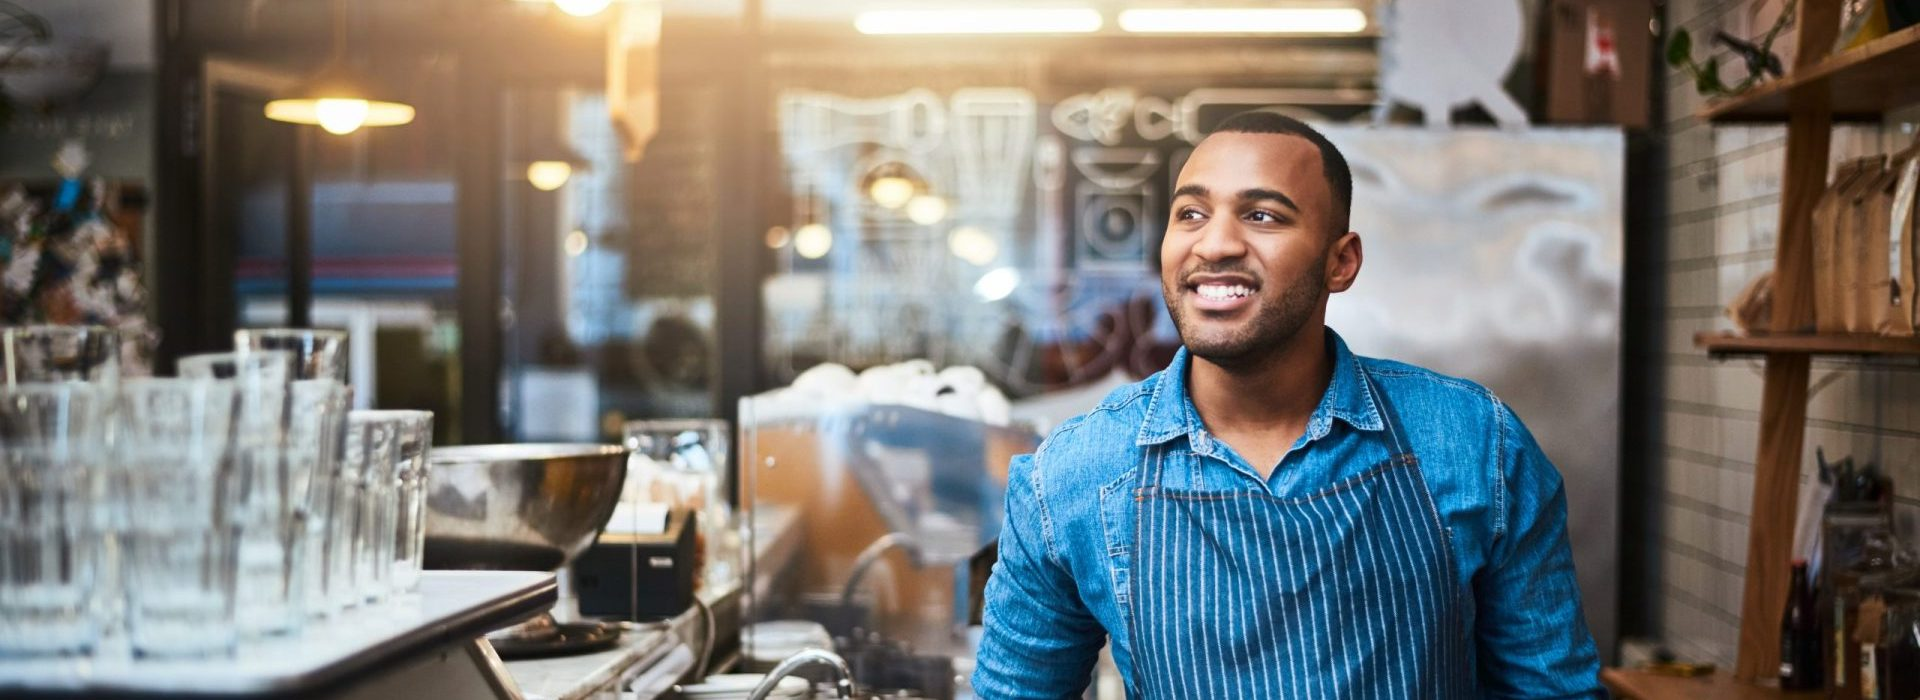 Young man working in kitchen of his restaurant.